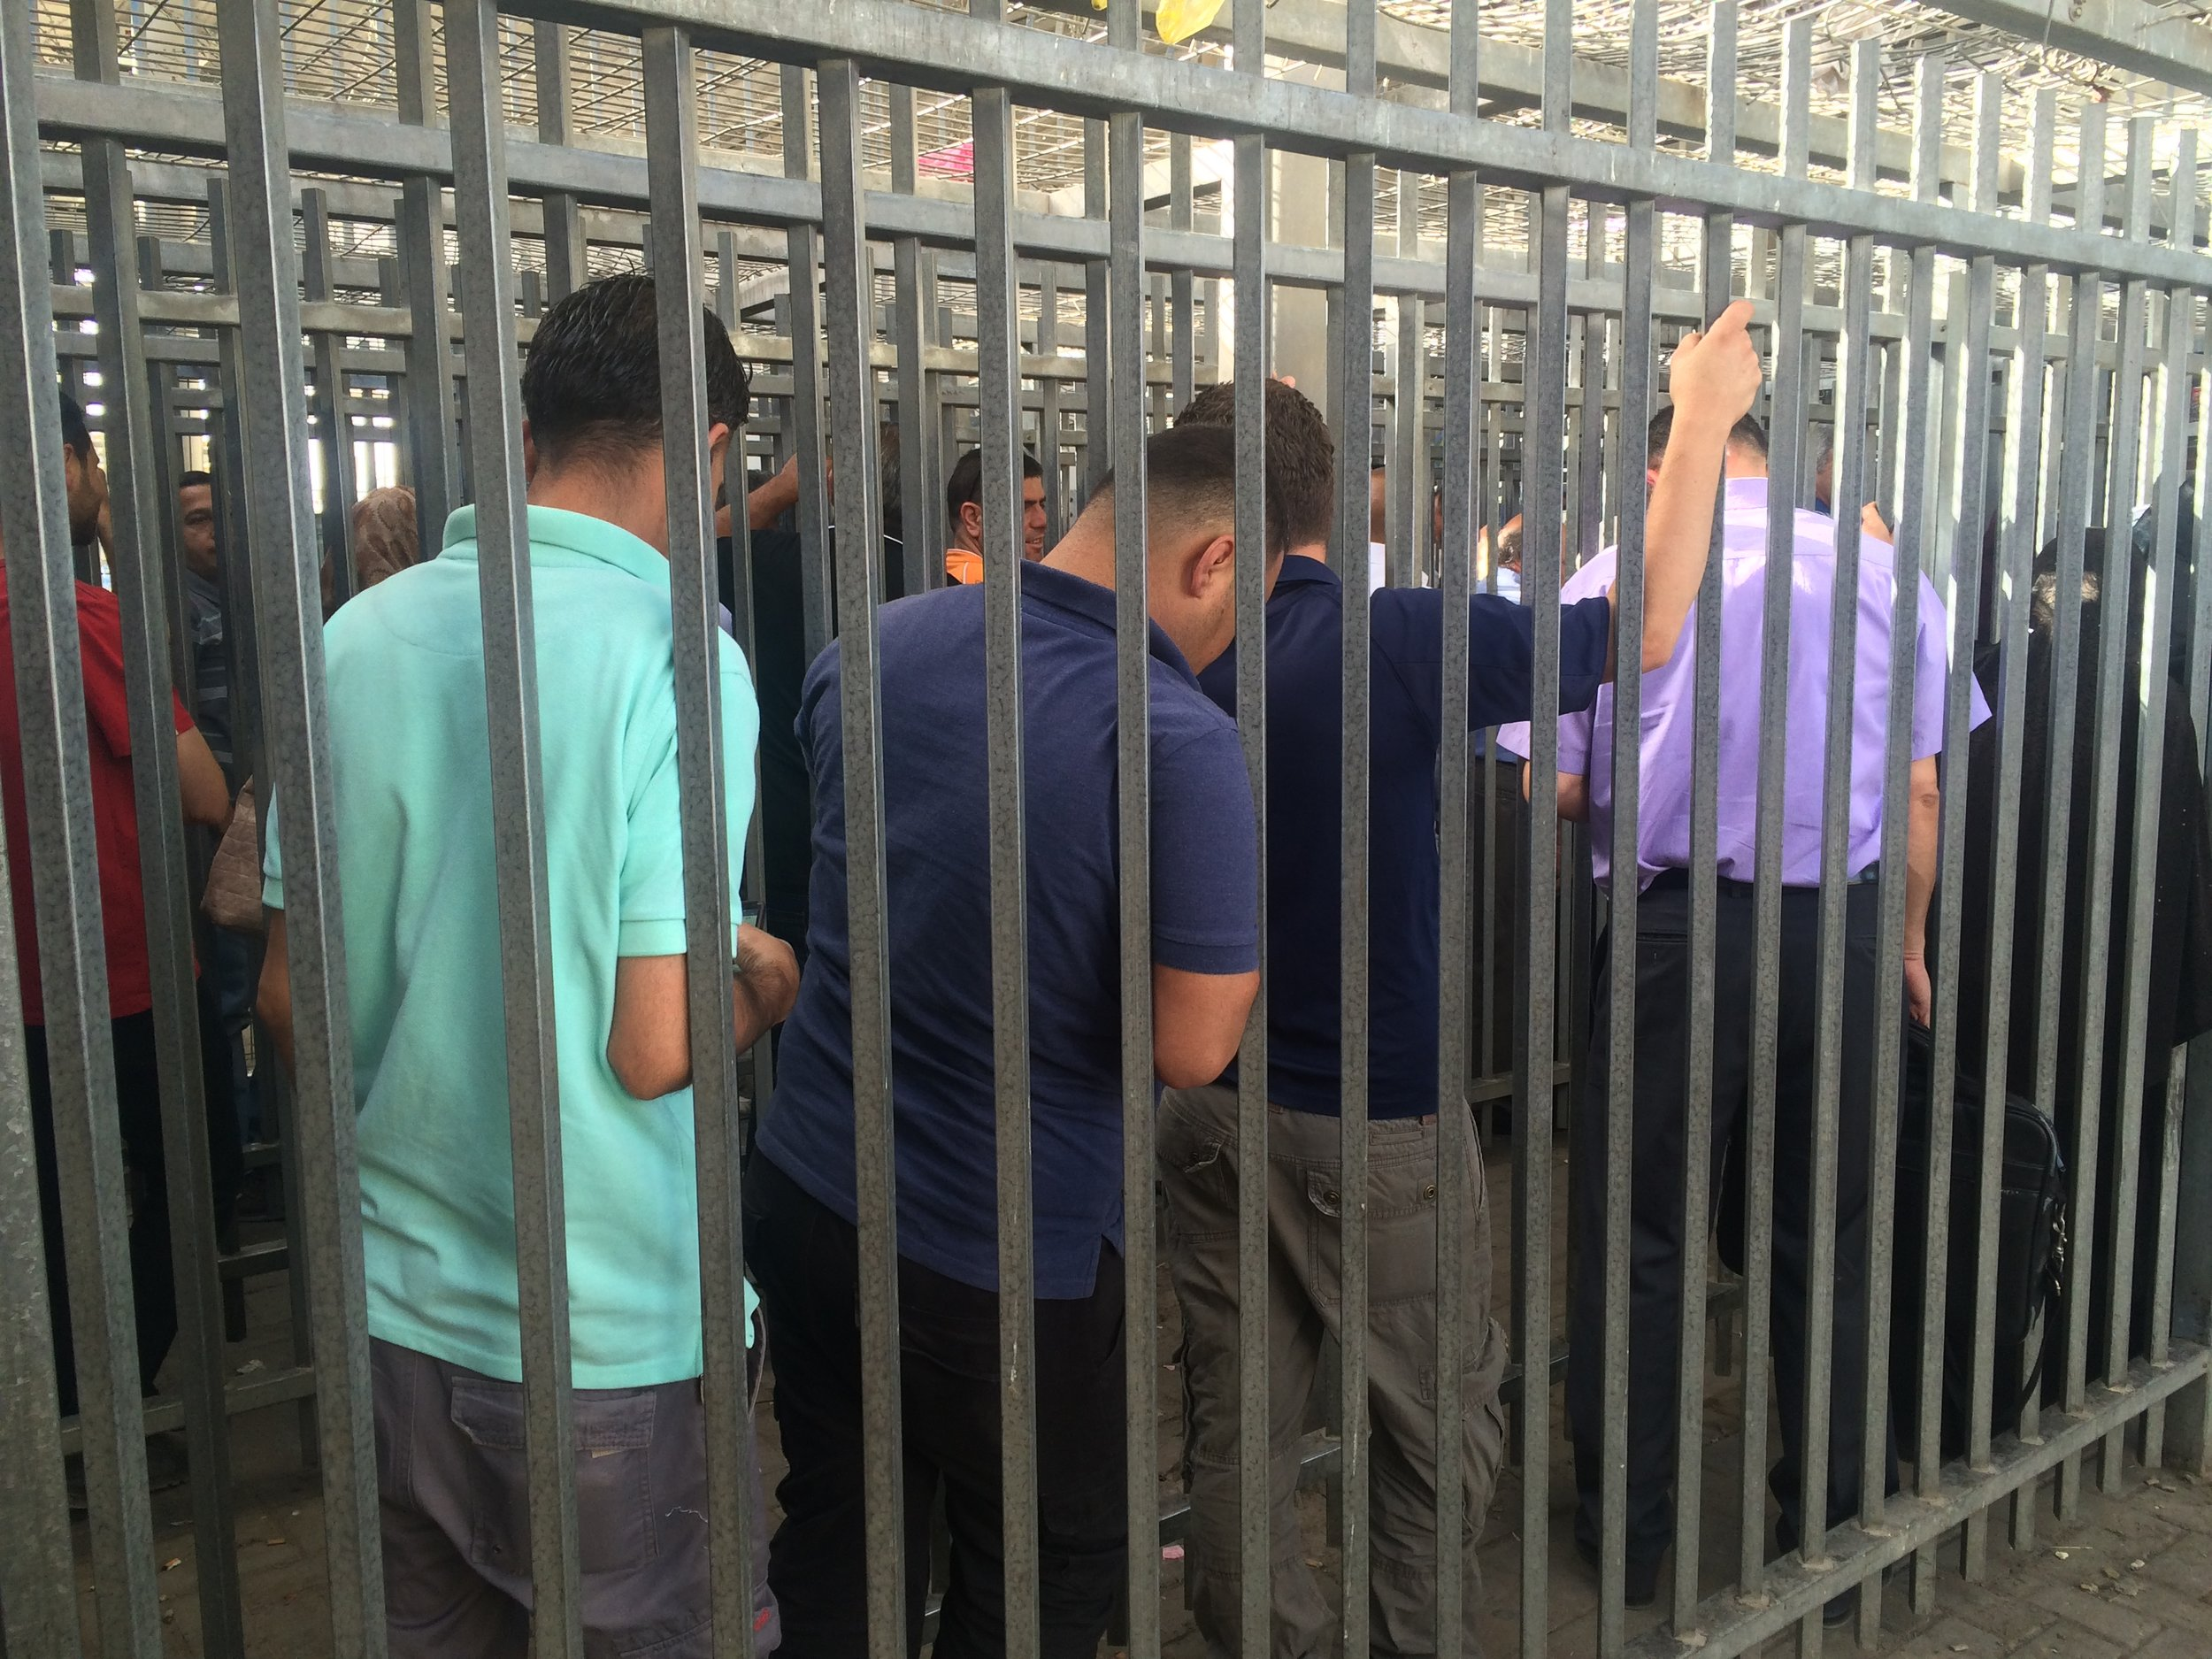 Photo from Qalandiya Checkpoint, June 2017. No photography is allowed inside the Military courts.